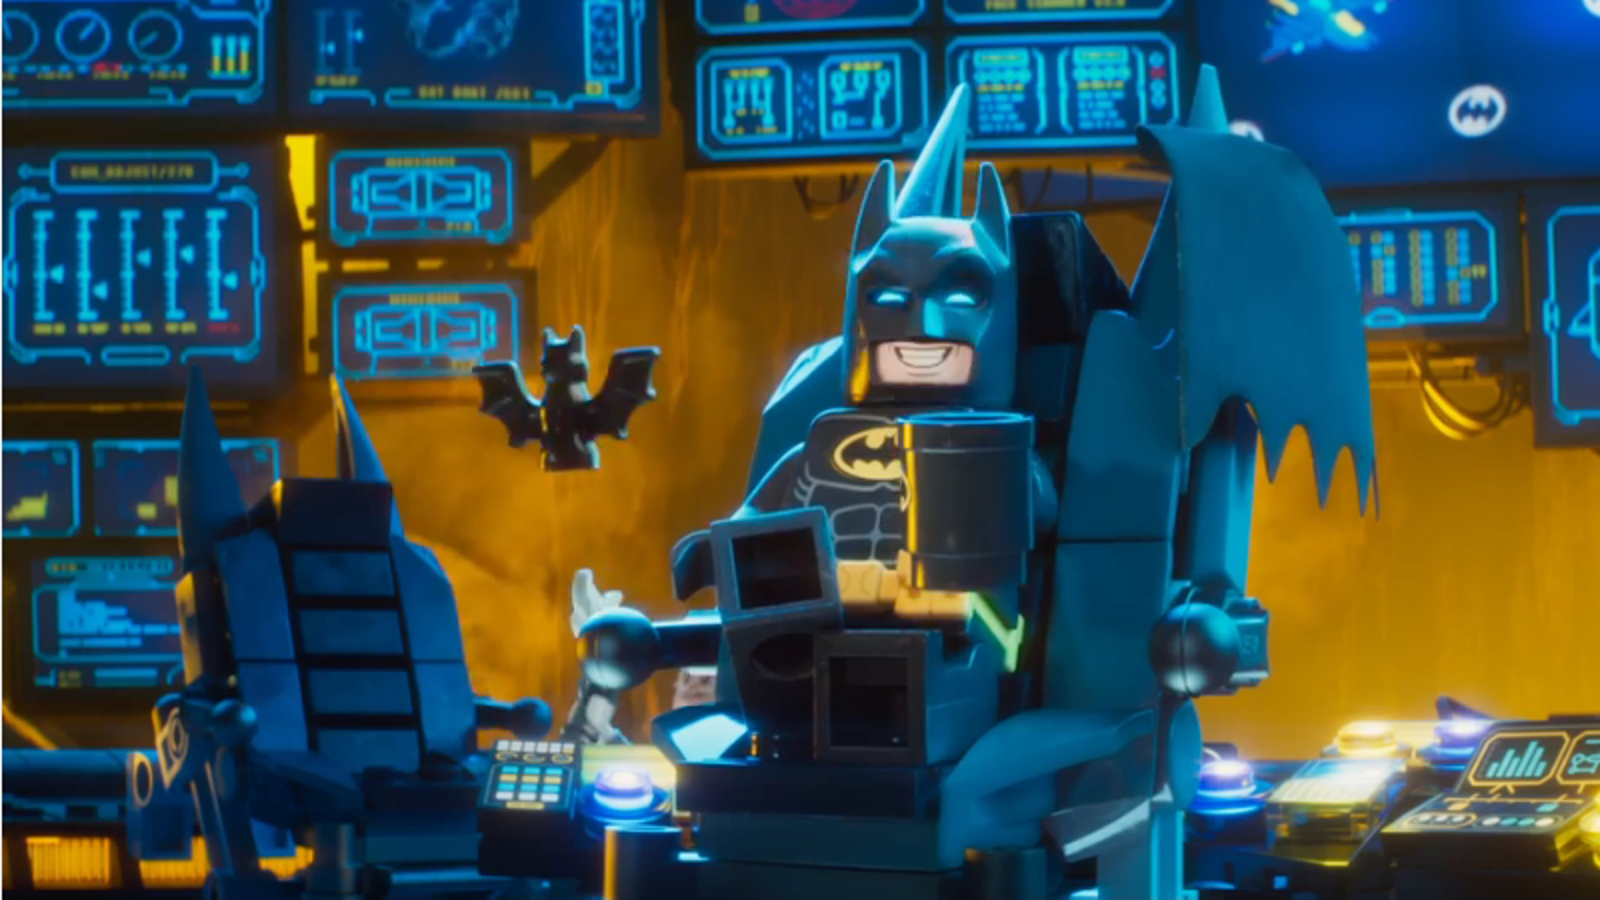 Lego Batman Explains Why He Got His Own Movie: It's Because He's Awesome